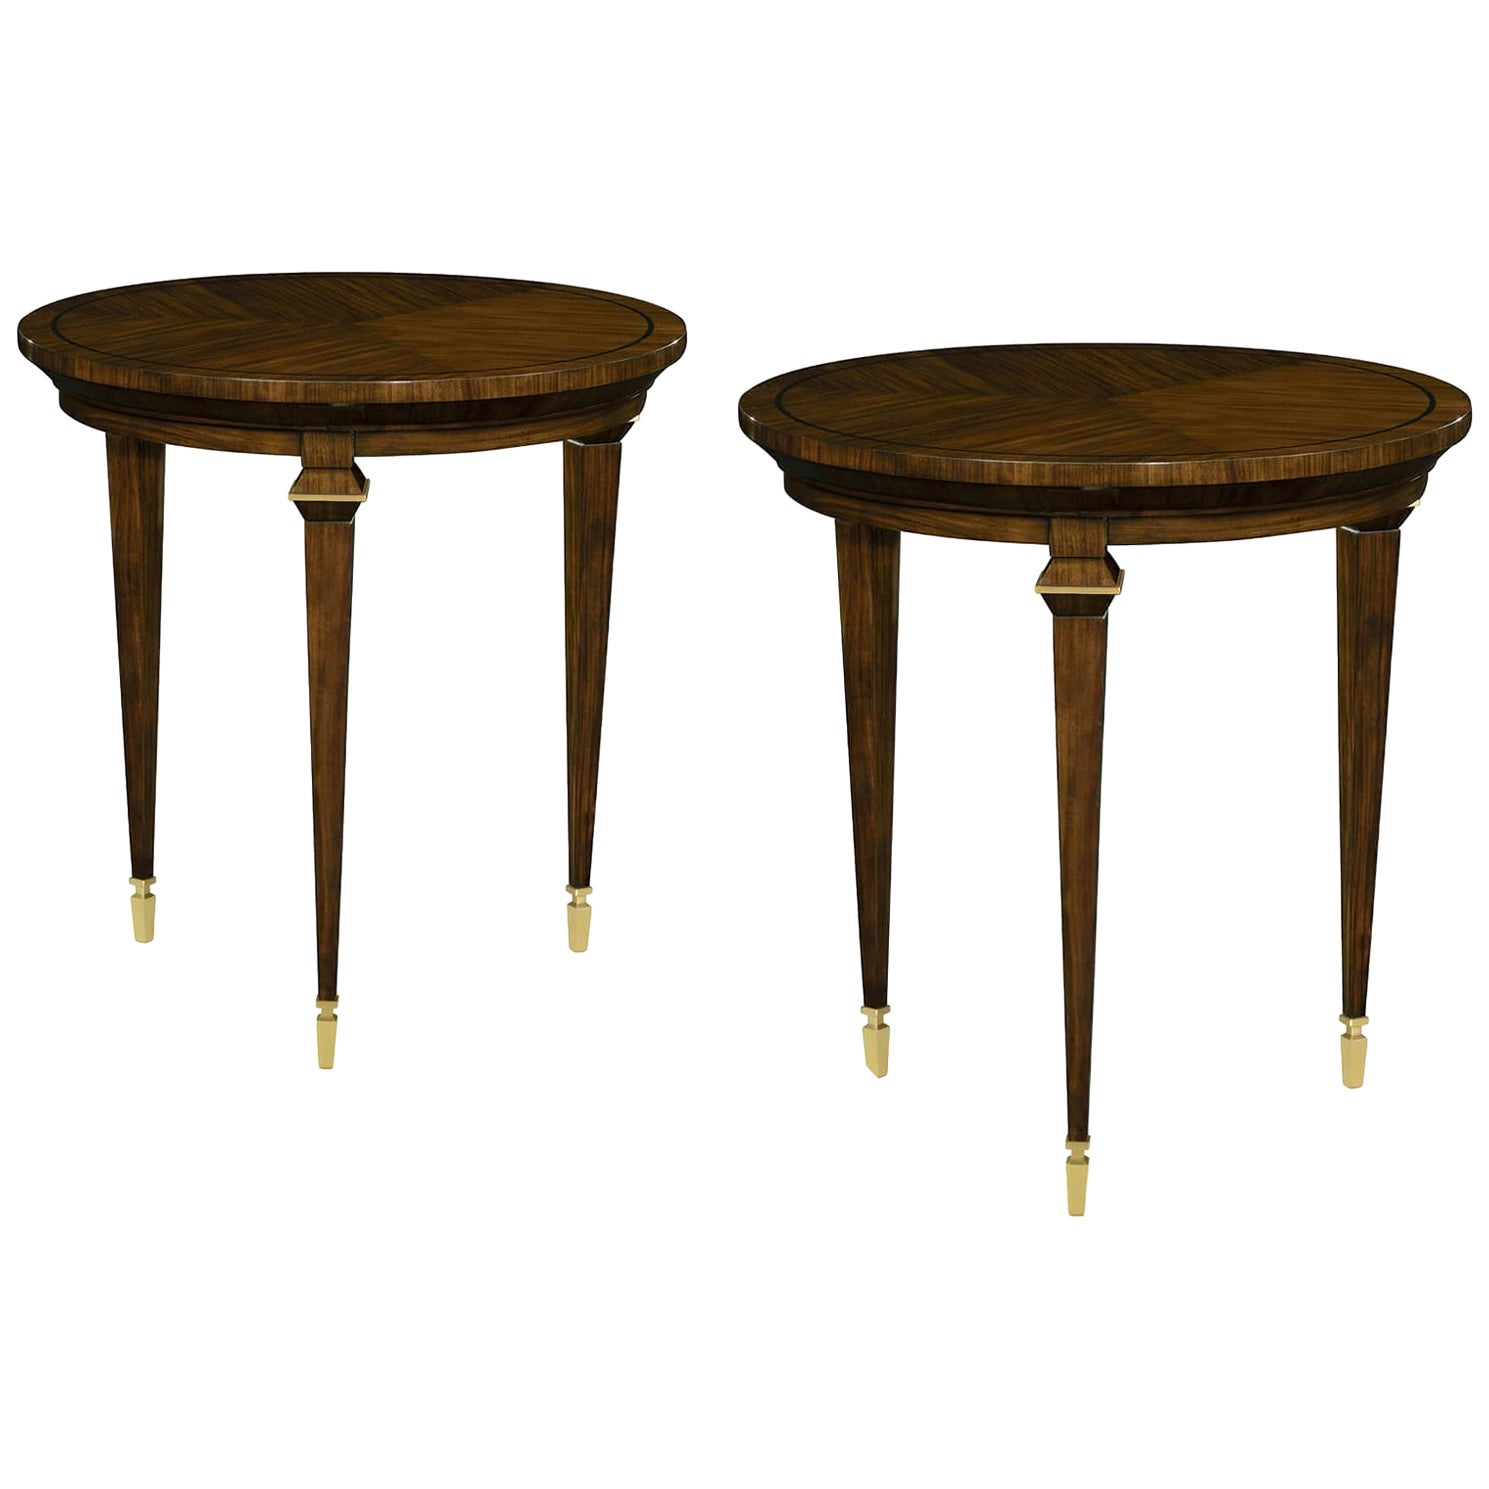 Pair of Art Deco Style Round Side Tables